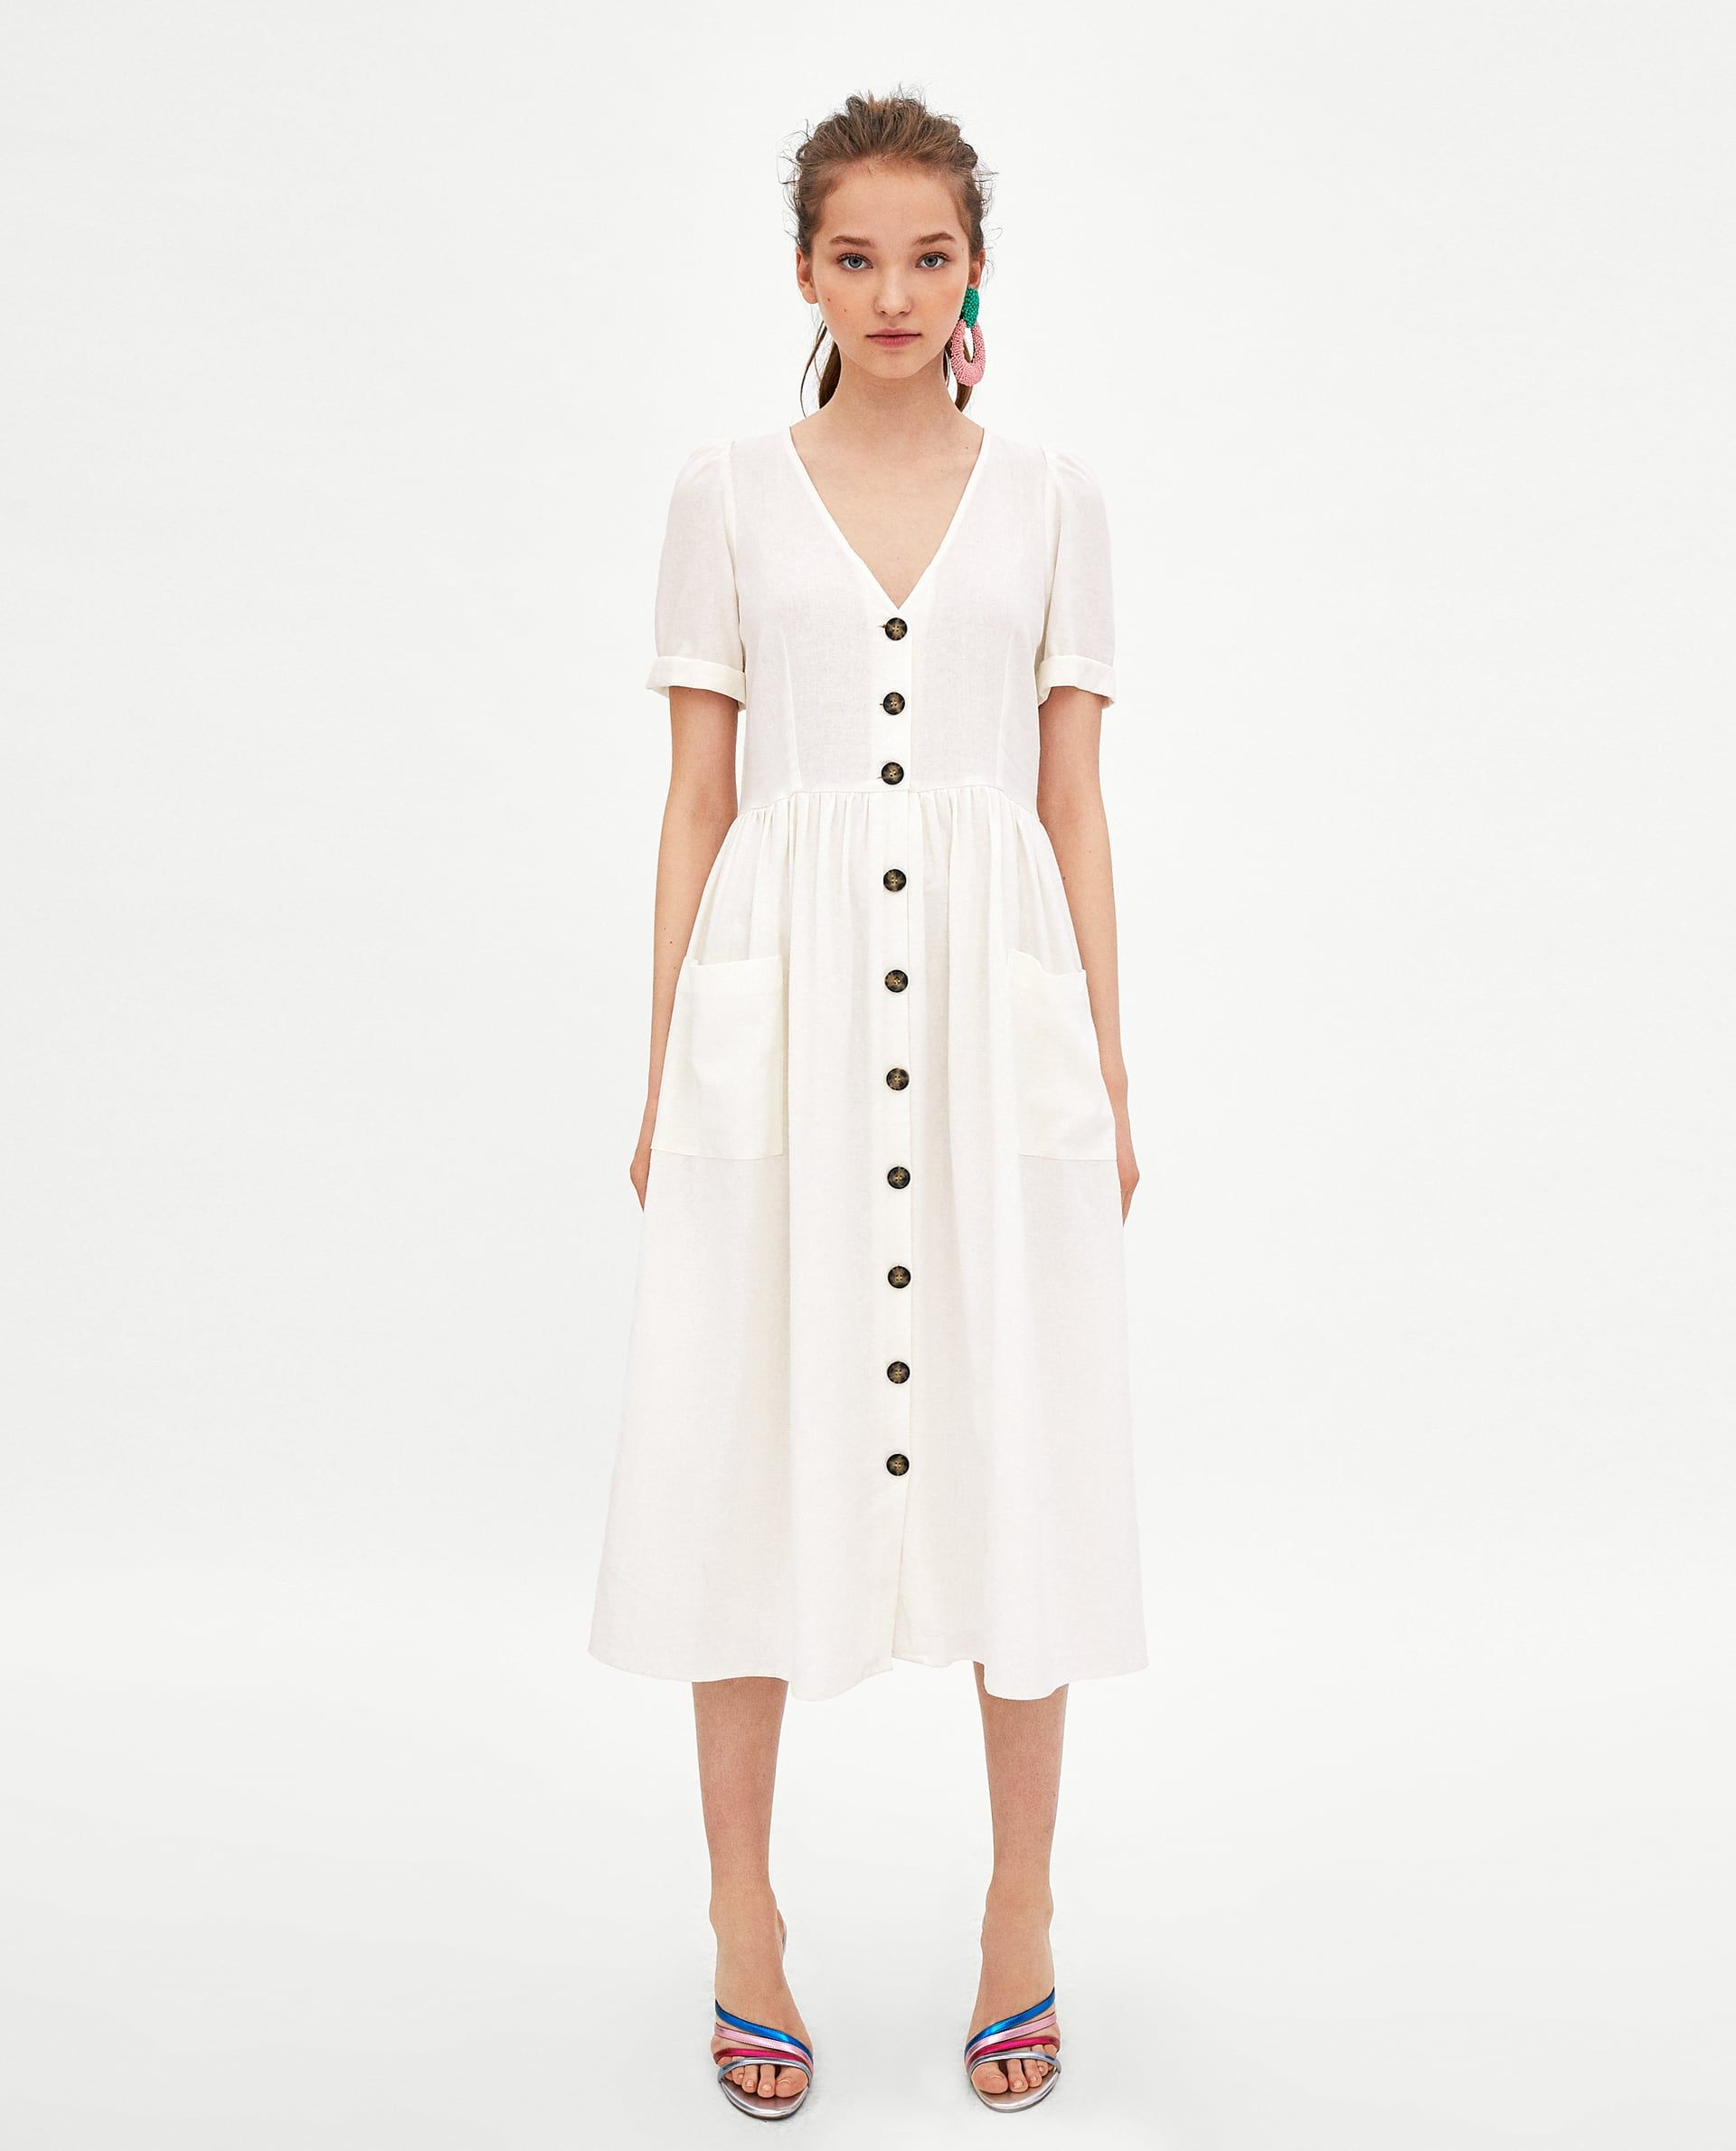 ZARA - WOMAN - LINEN MIDI DRESS WITH BUTTON FASTENING 5cb4707f4bfd